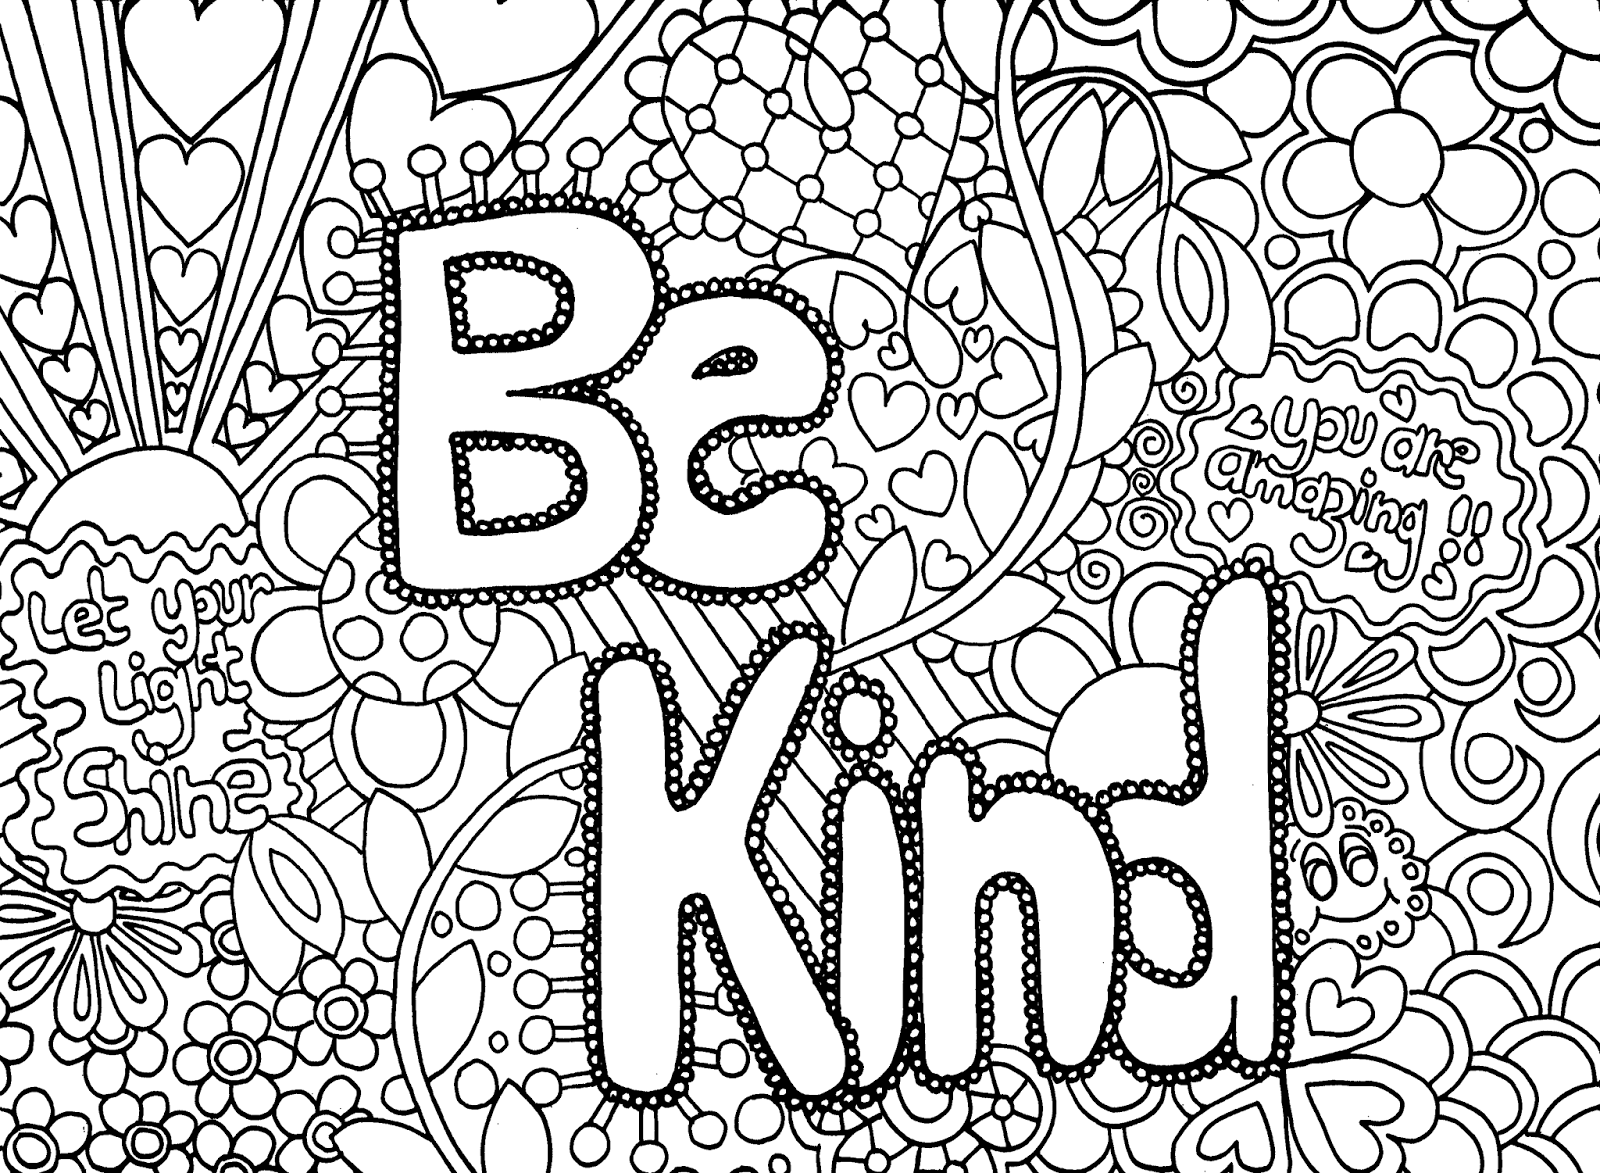 colaring pages. peppa pig coloring pages free coloring pages ...